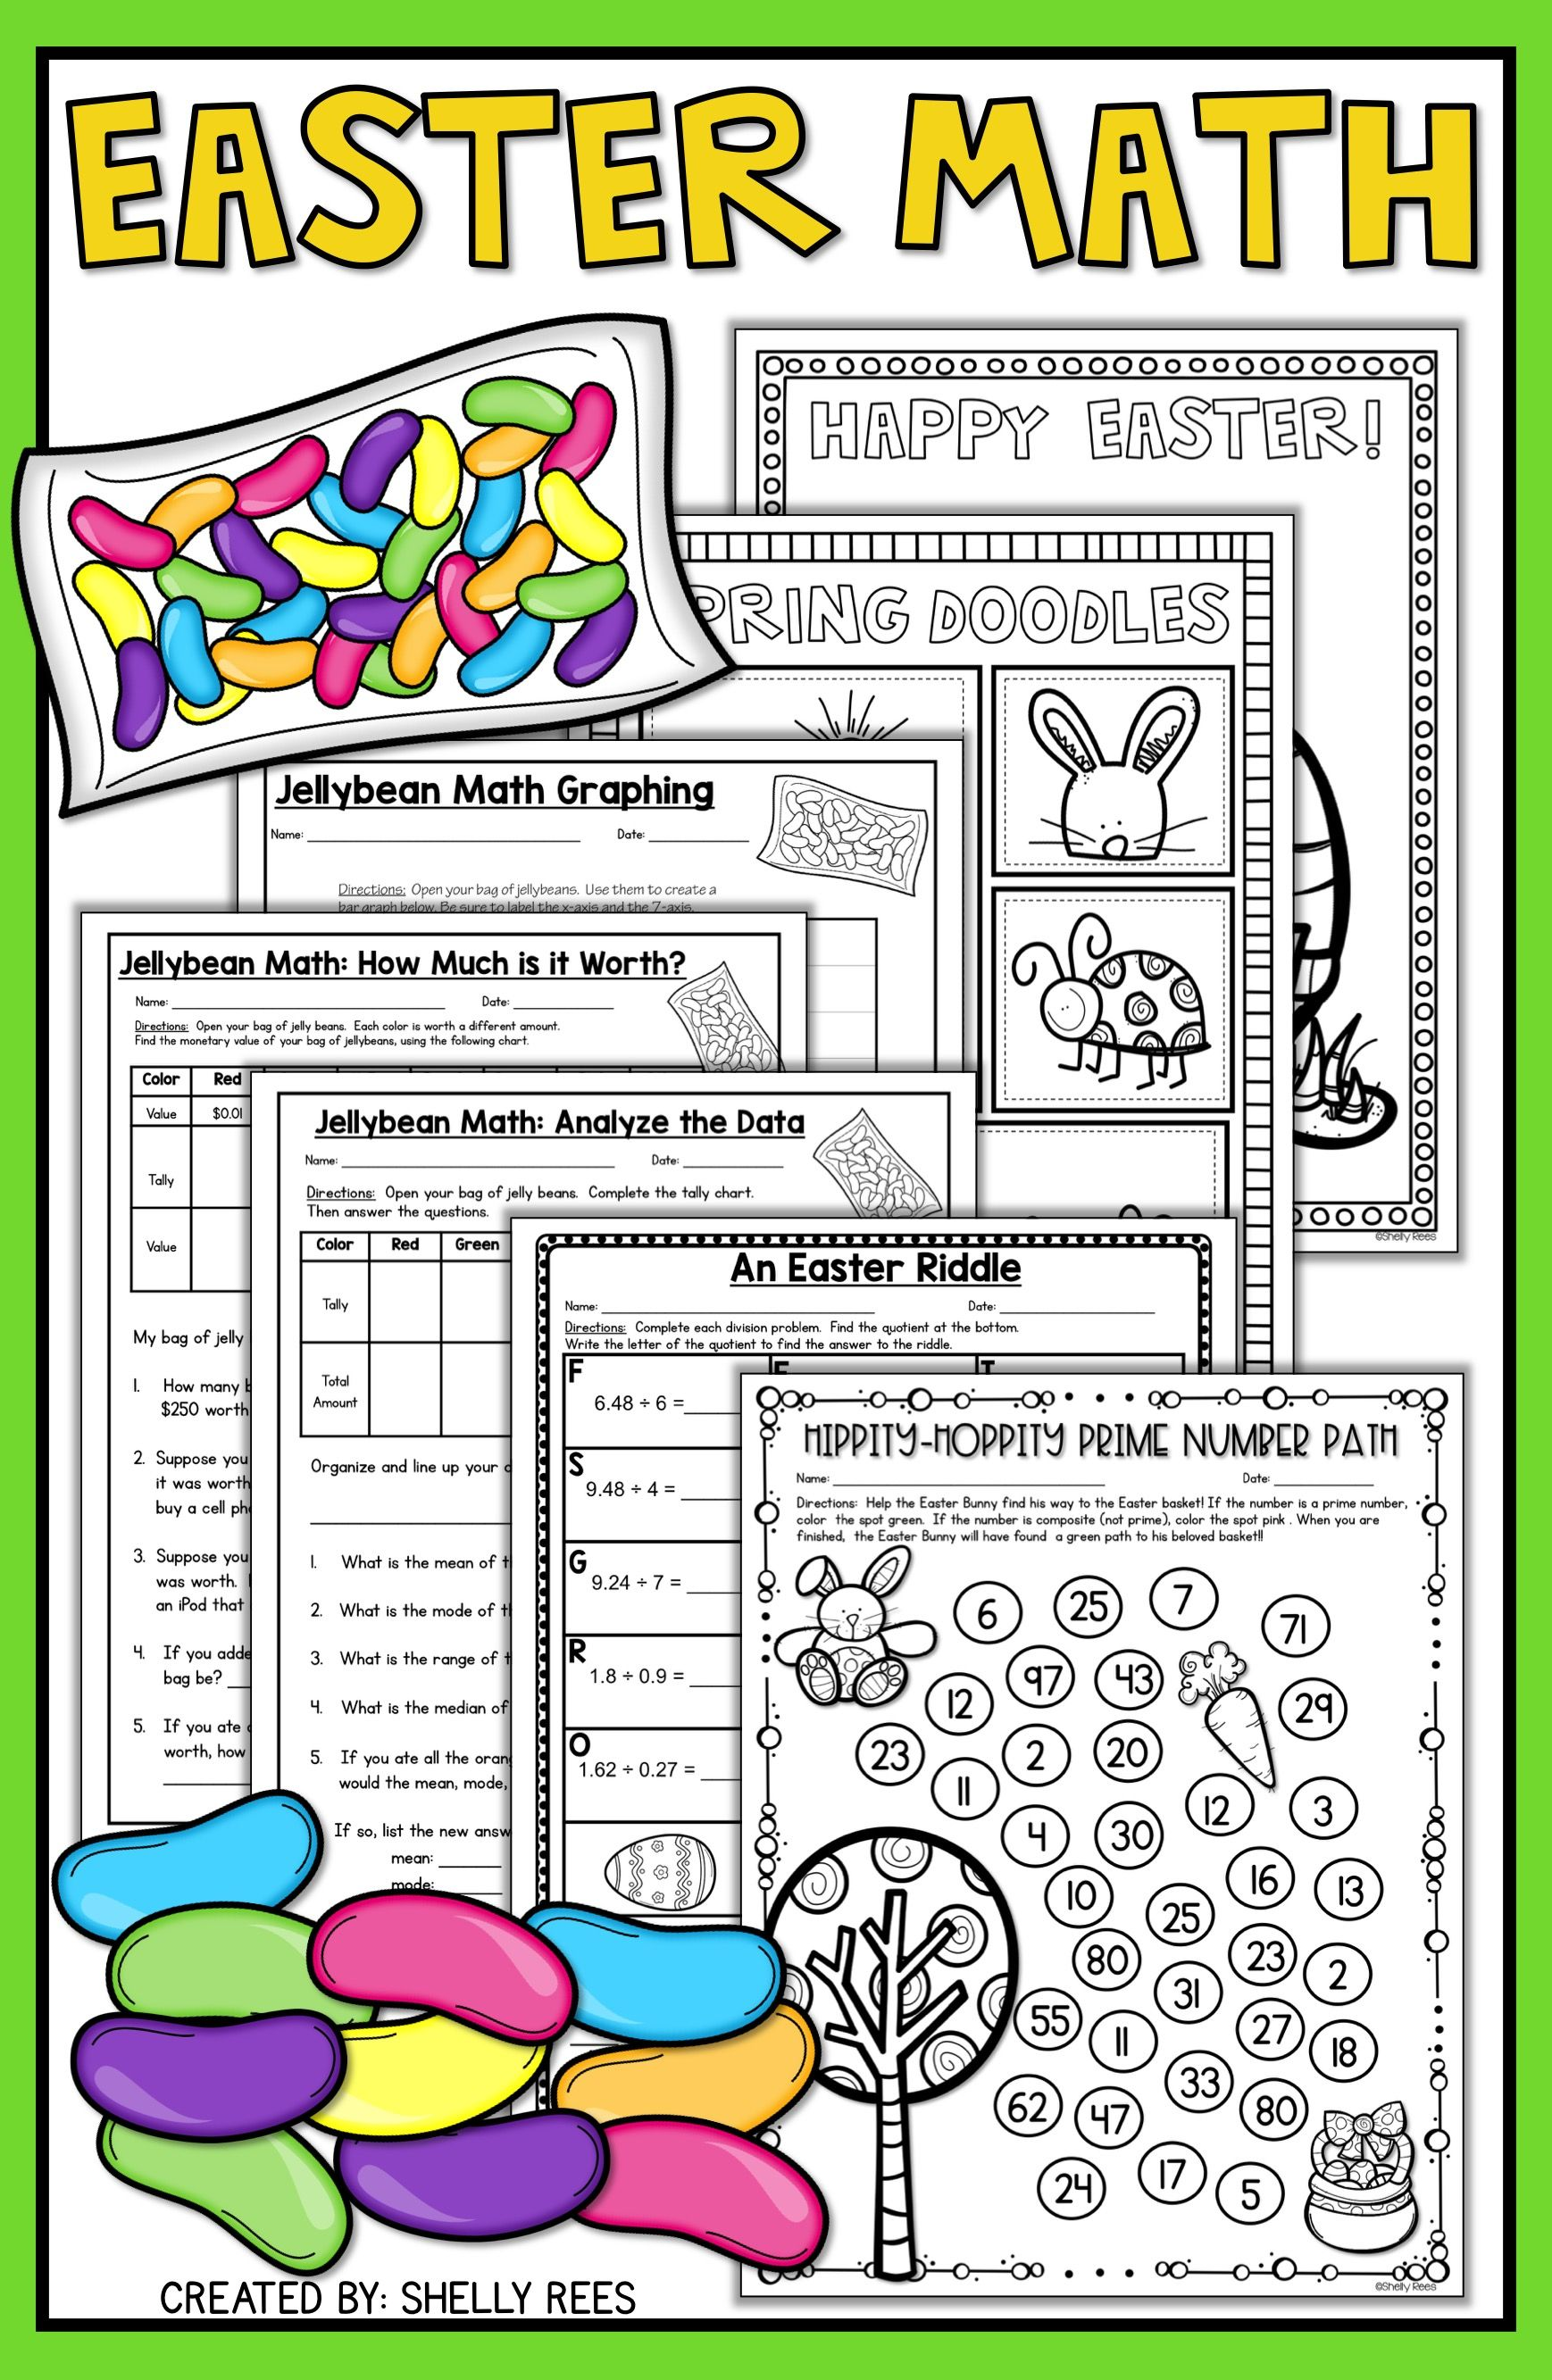 Easter Math Activities Are Fun For 3rd Grade 4th Grade 5th Grade And Middle School Students With T Easter Math Easter Math Worksheets Easter Math Activities